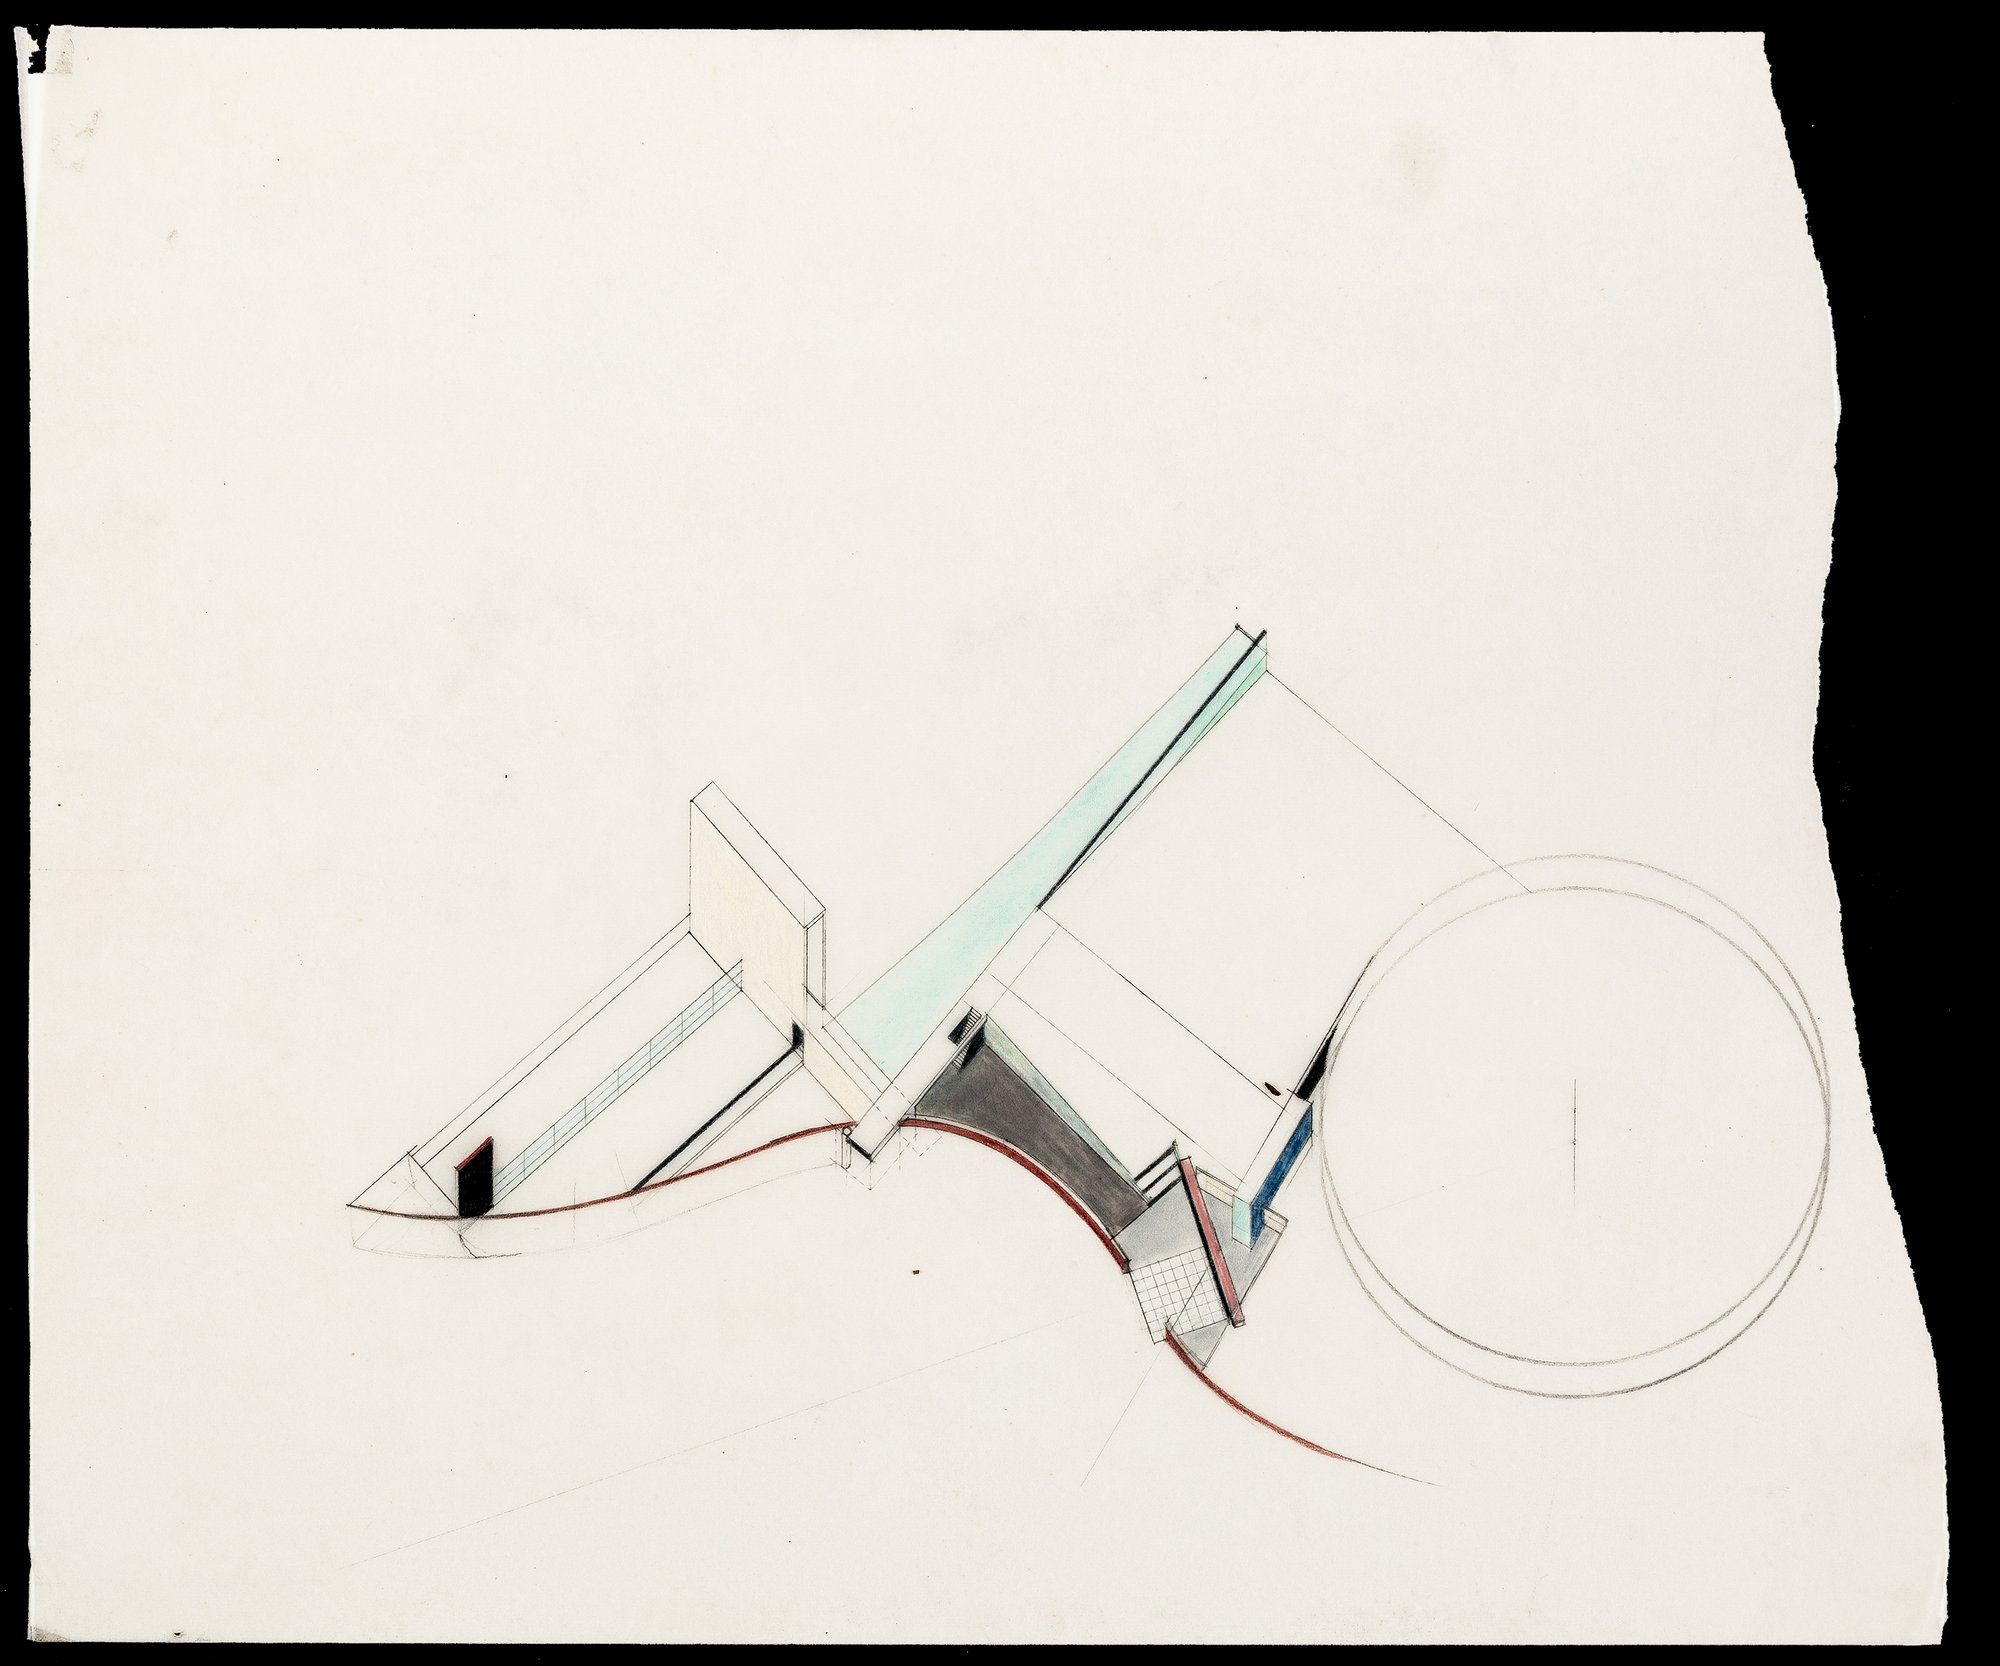 2000x1666 Stefano De Martino Drawings Of The Week Sets Drawing Matter